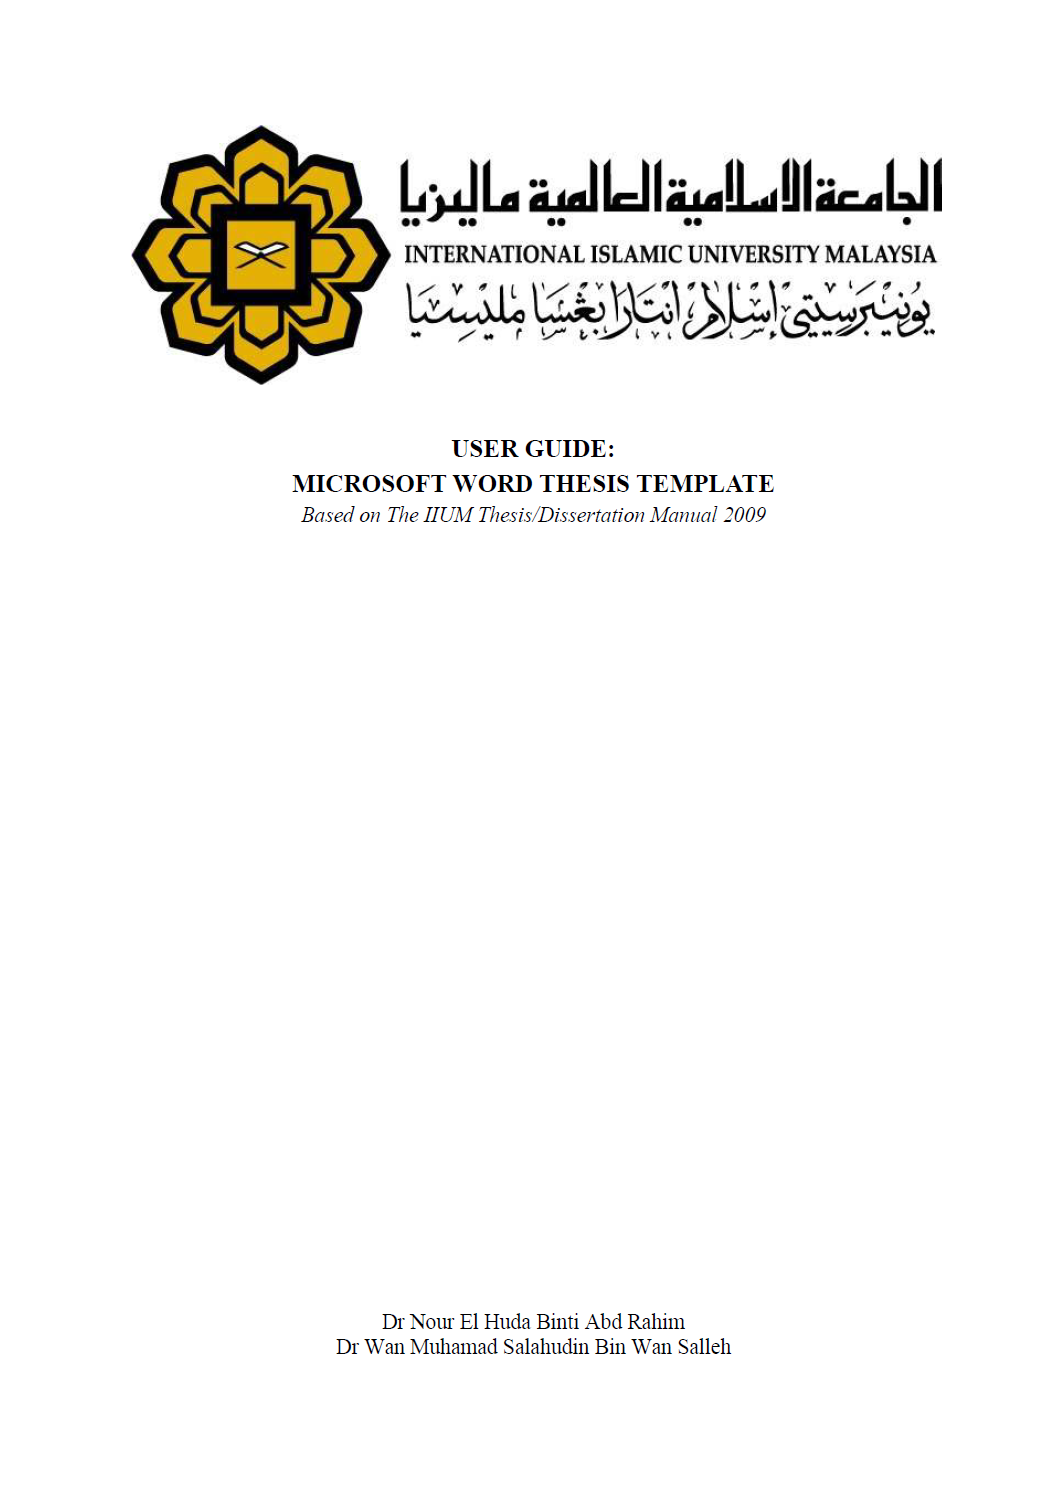 Thesis template iium